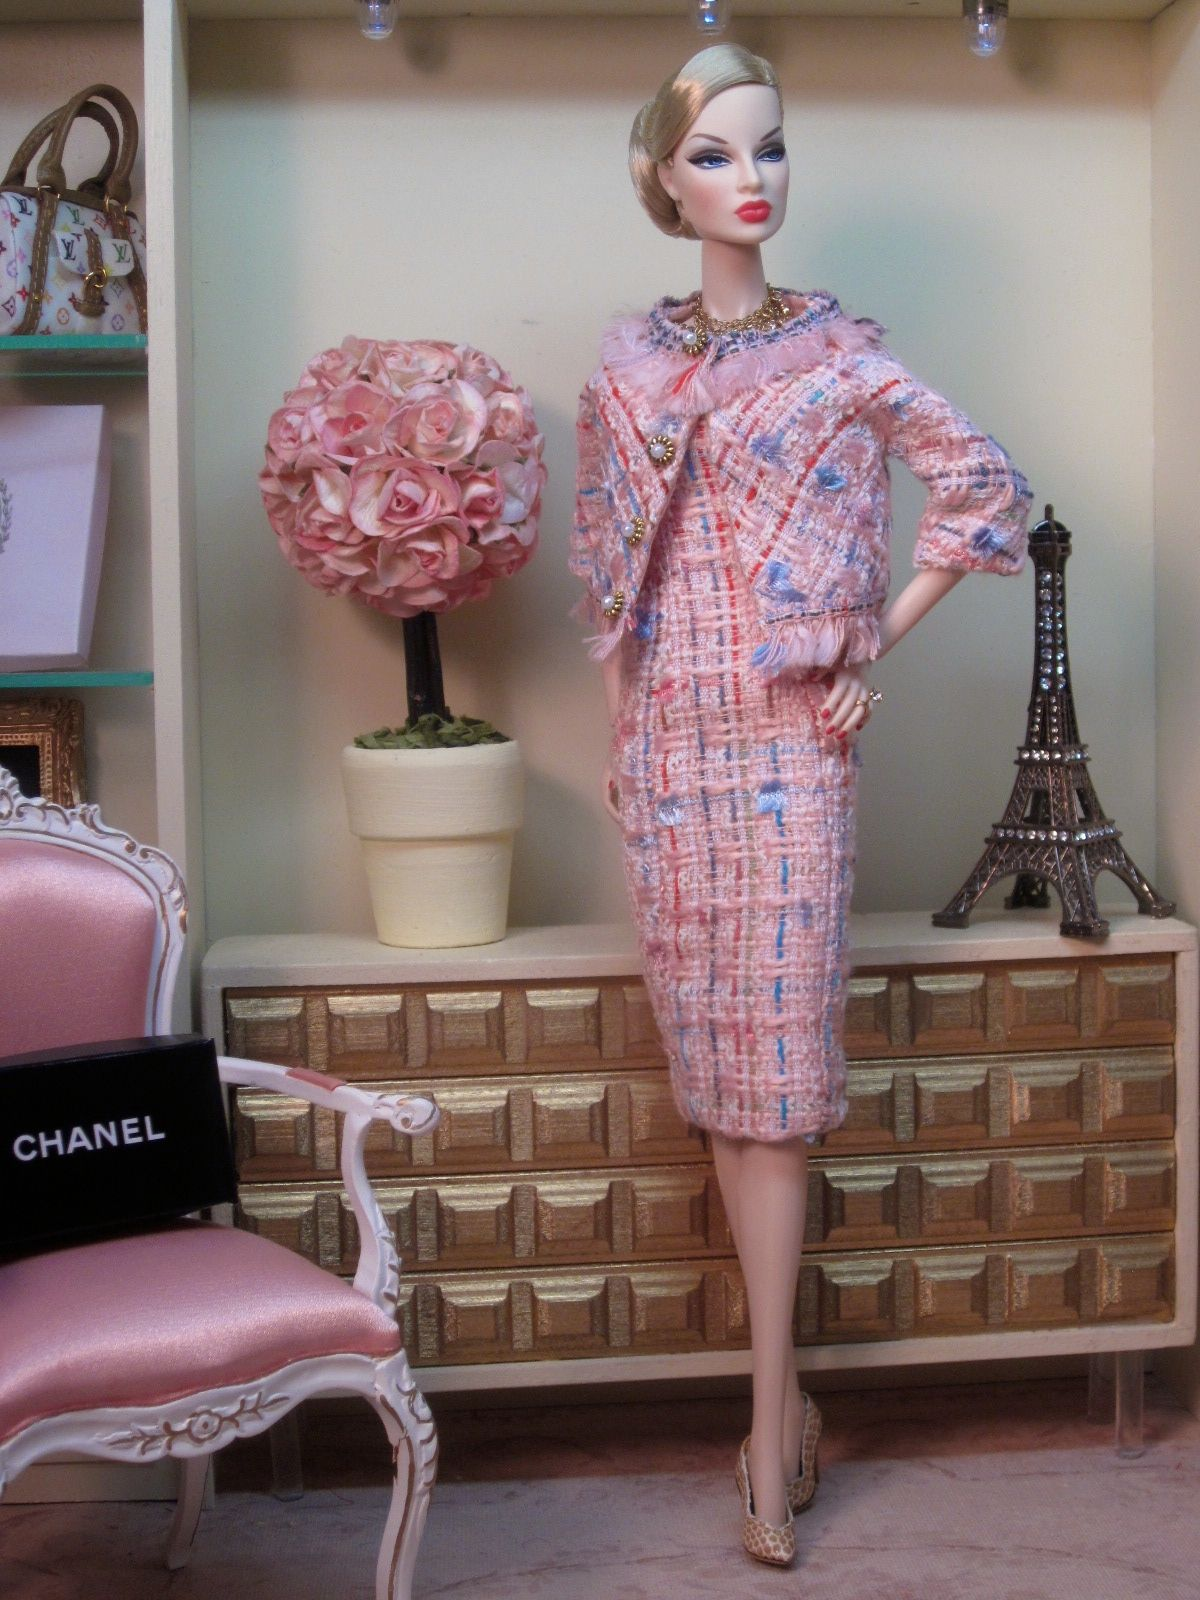 Chanel Inspired Suit in Cotton Candy Bouclé Chanel